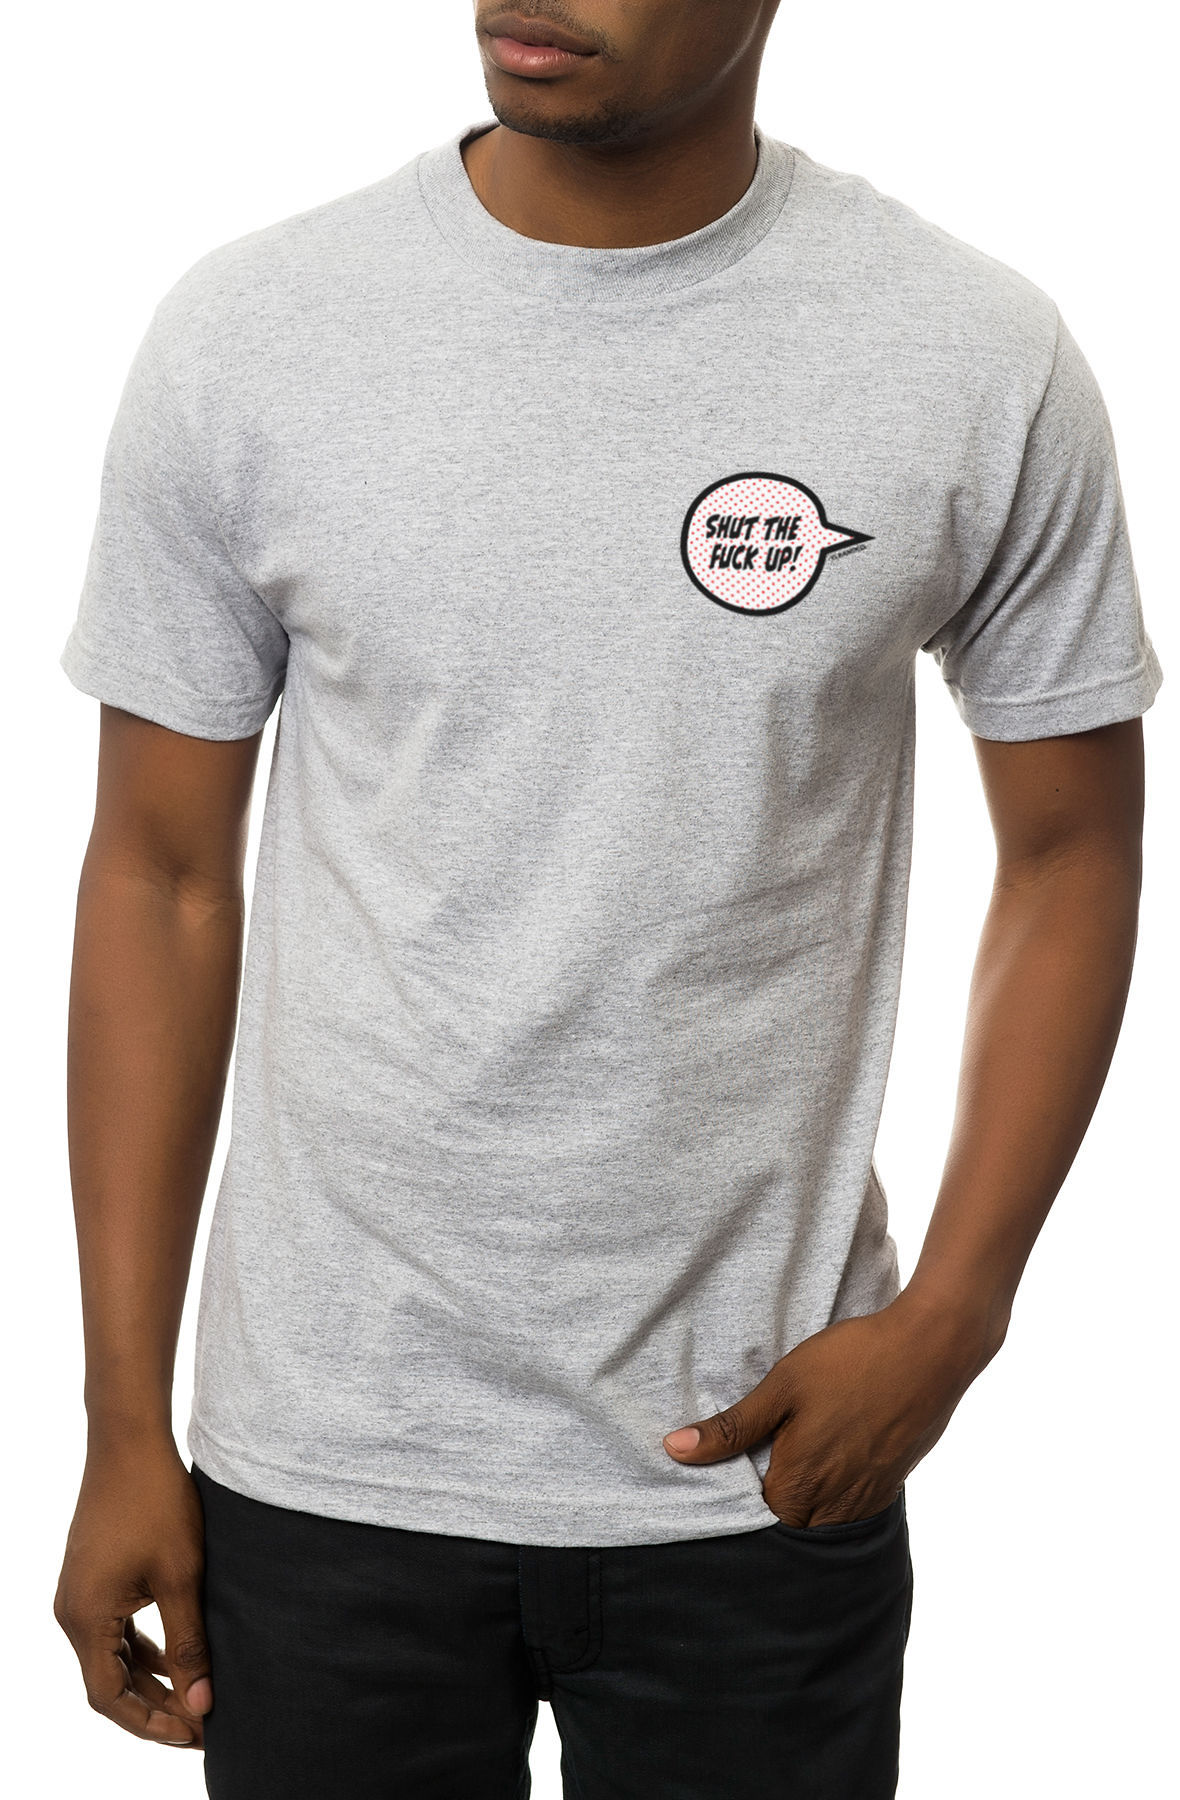 The STFU Tee in Heather Grey